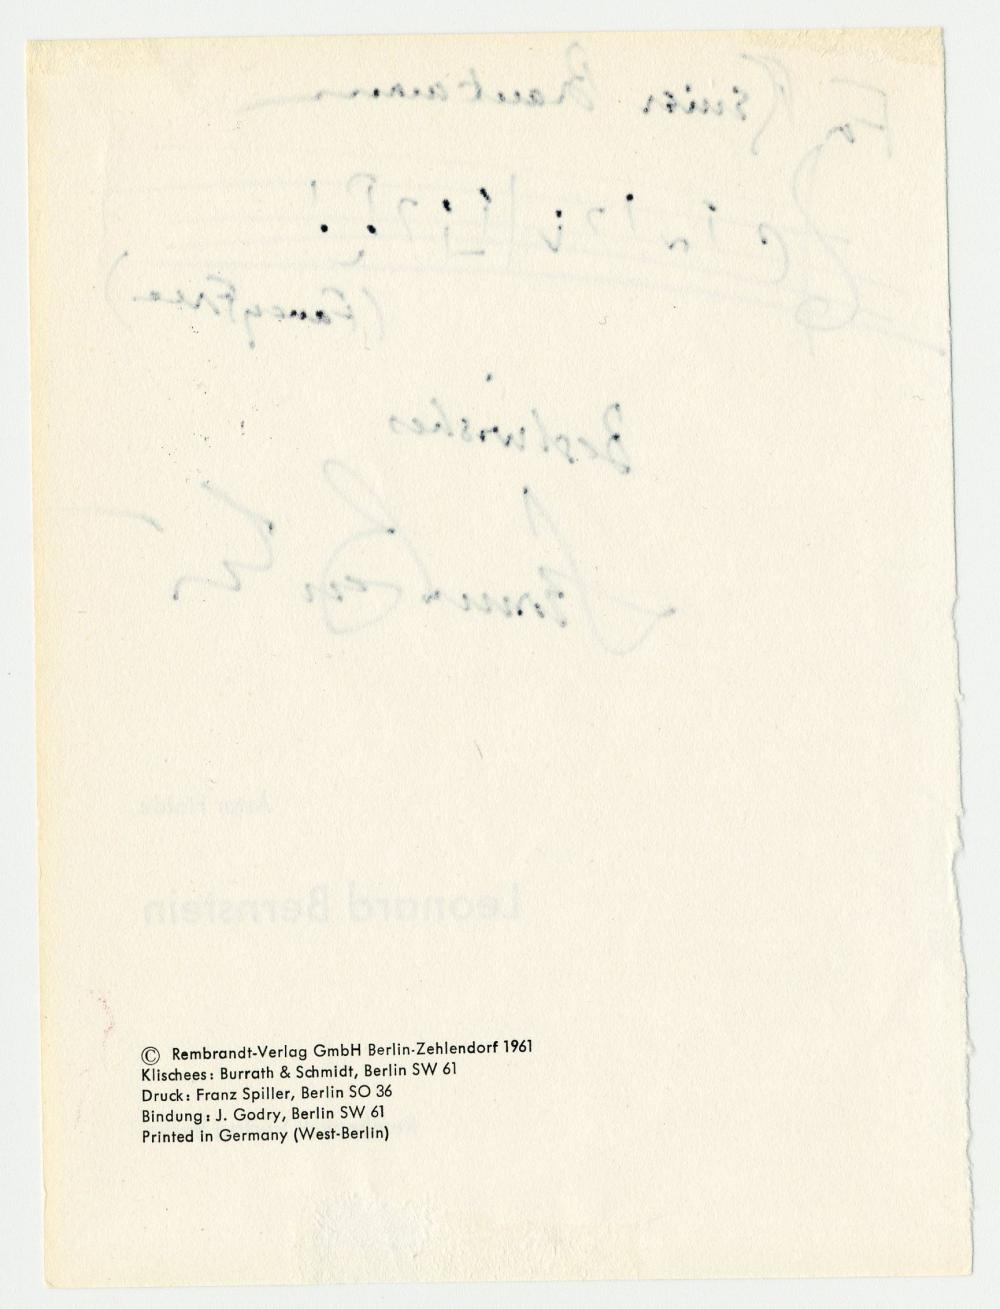 """Leonard Bernstein Signed Title Page from His Biography, with Two Measures of Musical Notation from 1944 Ballet """"Fancy Free"""""""